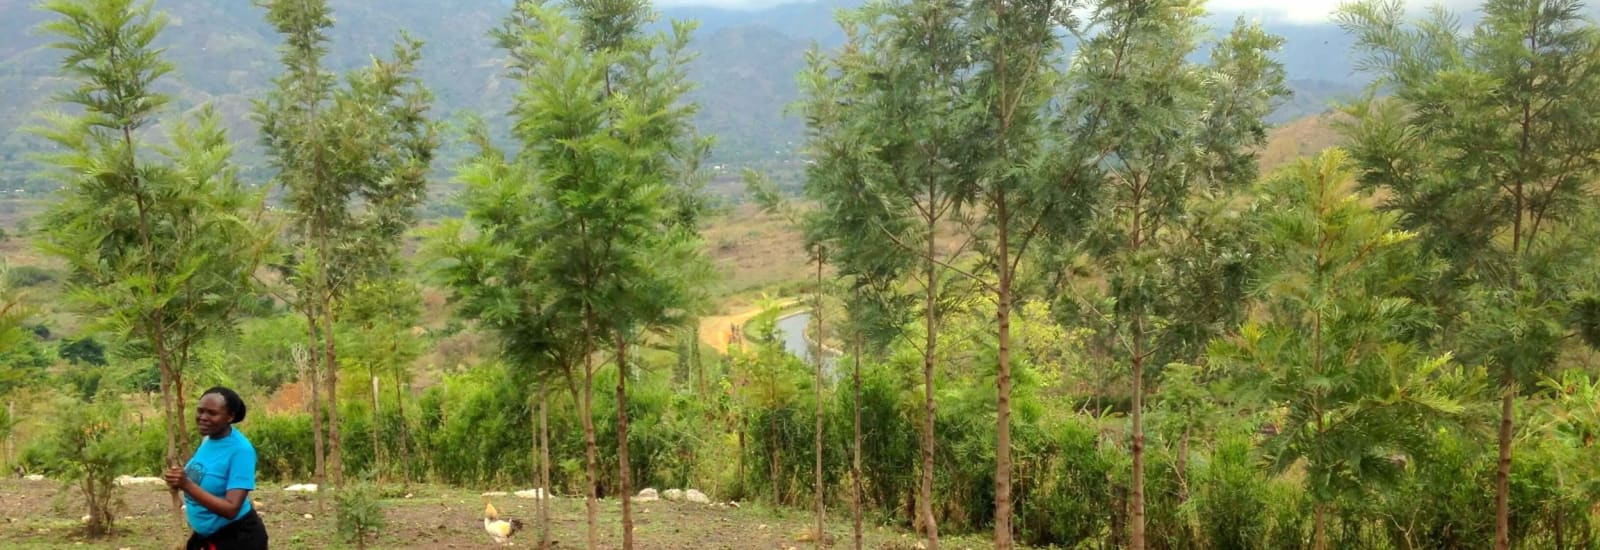 Tropical tree planting: the key to climate action and supporting climate-sensitive communities